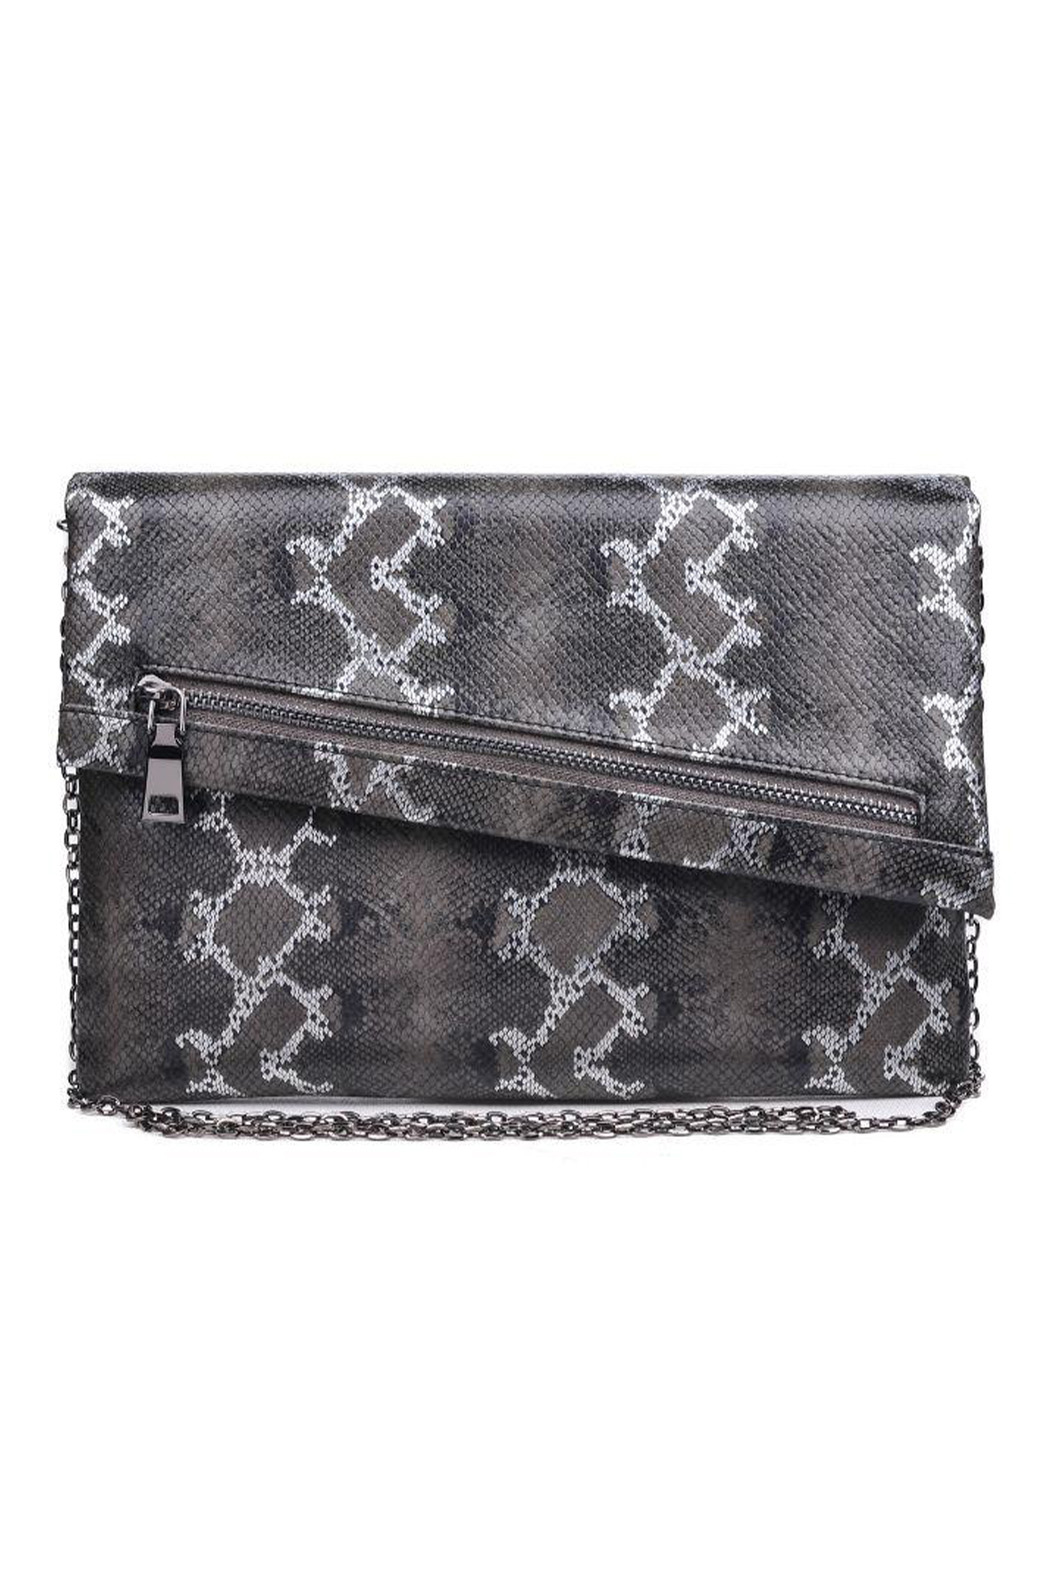 Urban Expressions Maddox Vegan Leather Clutch - Front Cropped Image